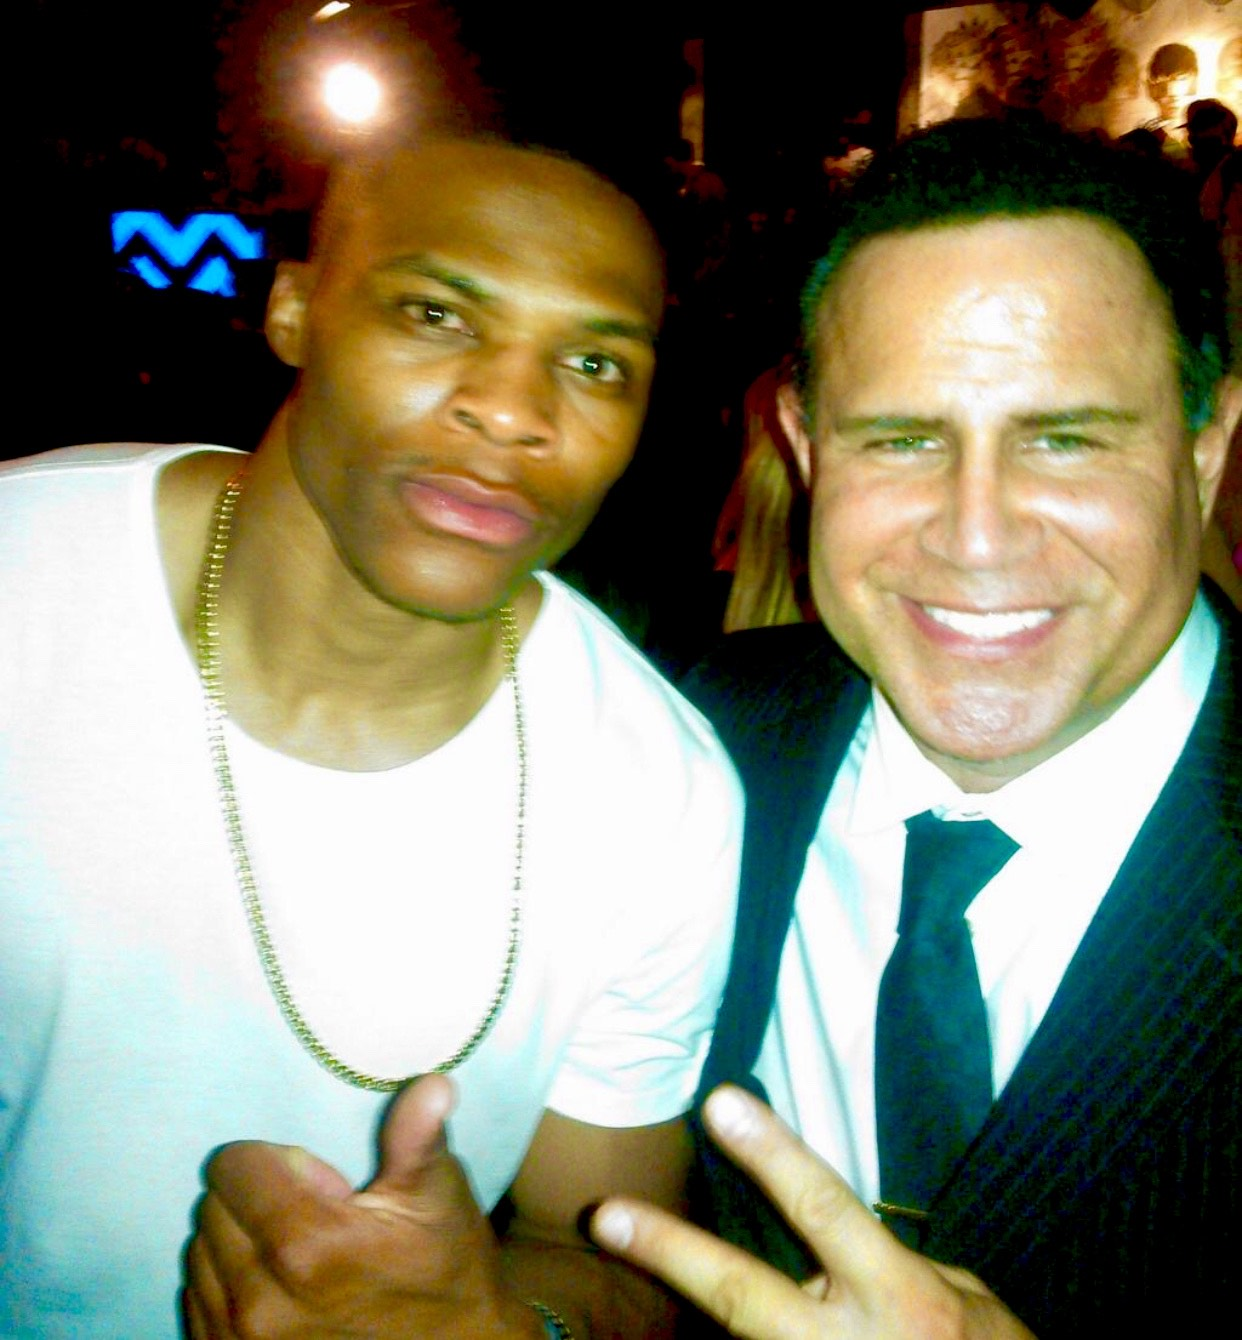 Russell Westbrook, Russell Westbrook NBA, Russell Westbrook Houston Rockets, Keith Middlebrook, Keith Middlebrook Pro Sports, Russell Westbrook Warriors, Keith Middlebrook Brand, Keith Middlebrook Foundation, Keith Middlebrook Net Worth 2020, Keith Middlebrook Bodybuilder, NBA, NFL, MLB, Boxing, Floyd Mayweather, Success Wealth Health Prosperity